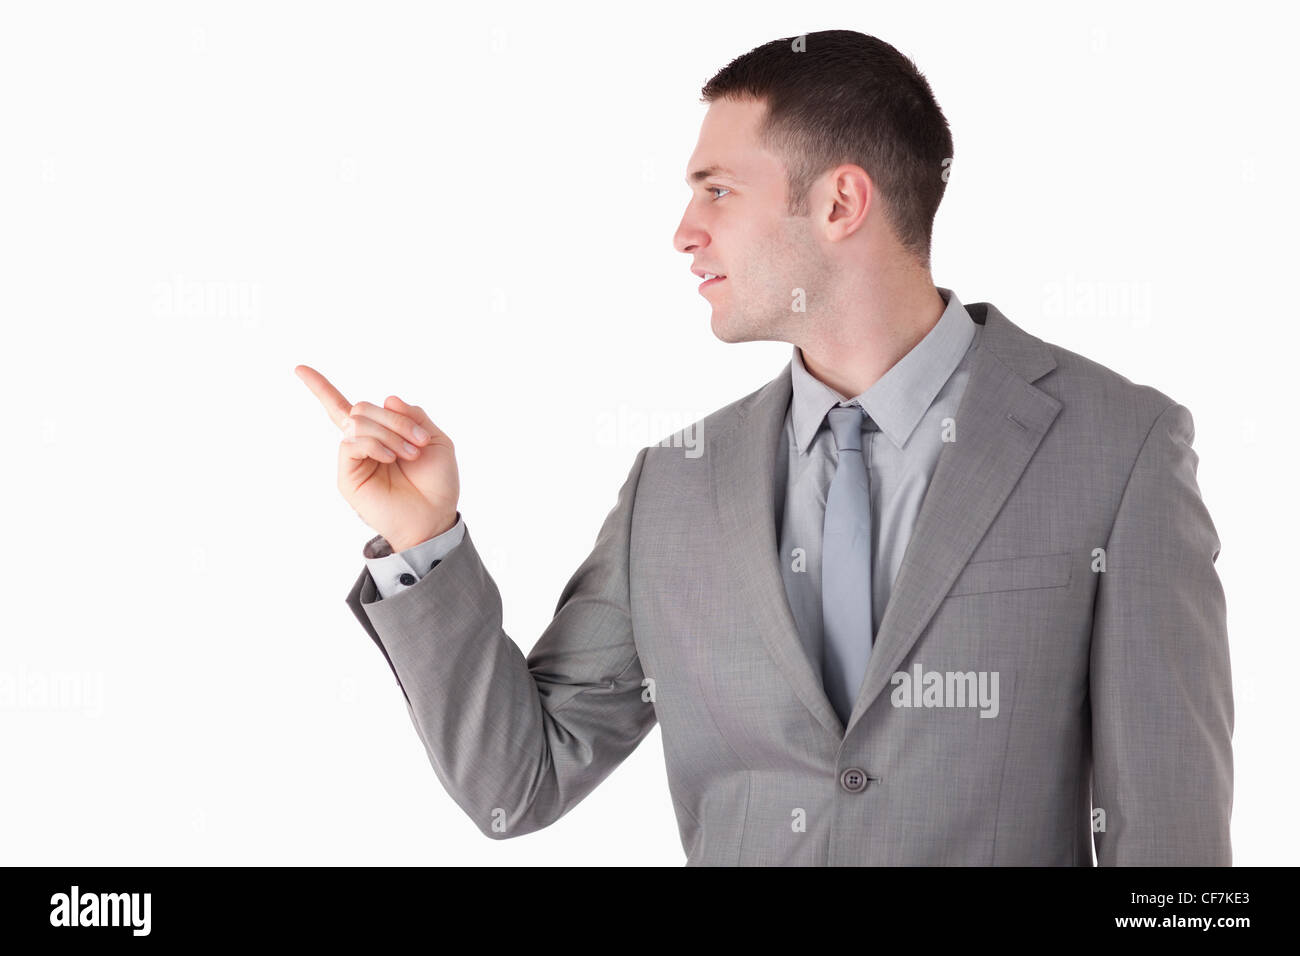 Businessman pointing at something - Stock Image